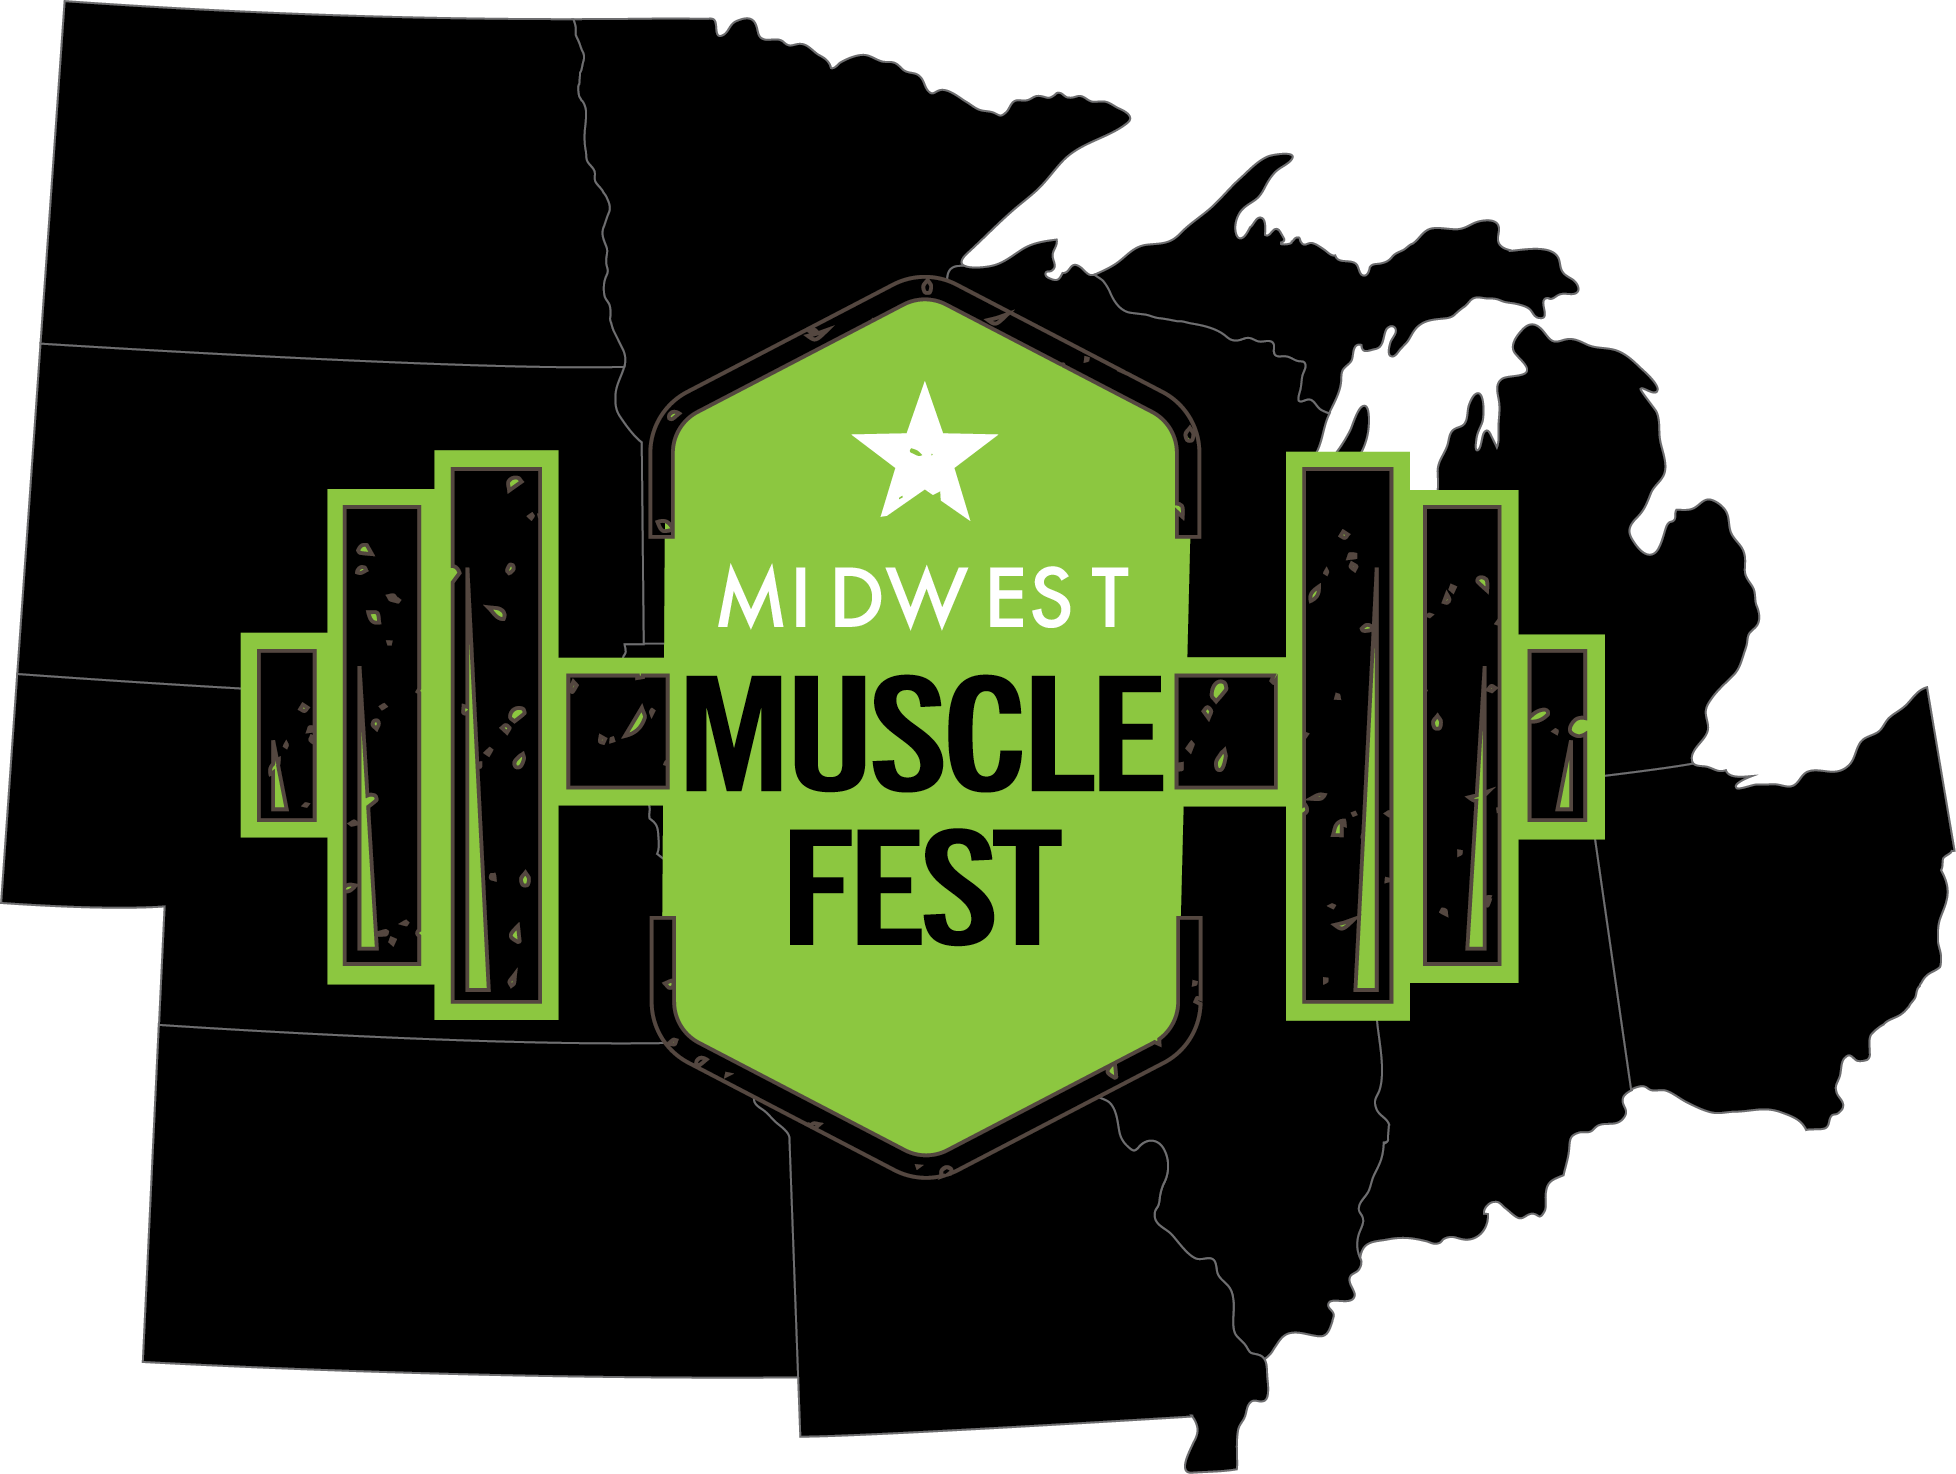 2021 NANBF MIDWEST MUSCLE FEST RESULTS